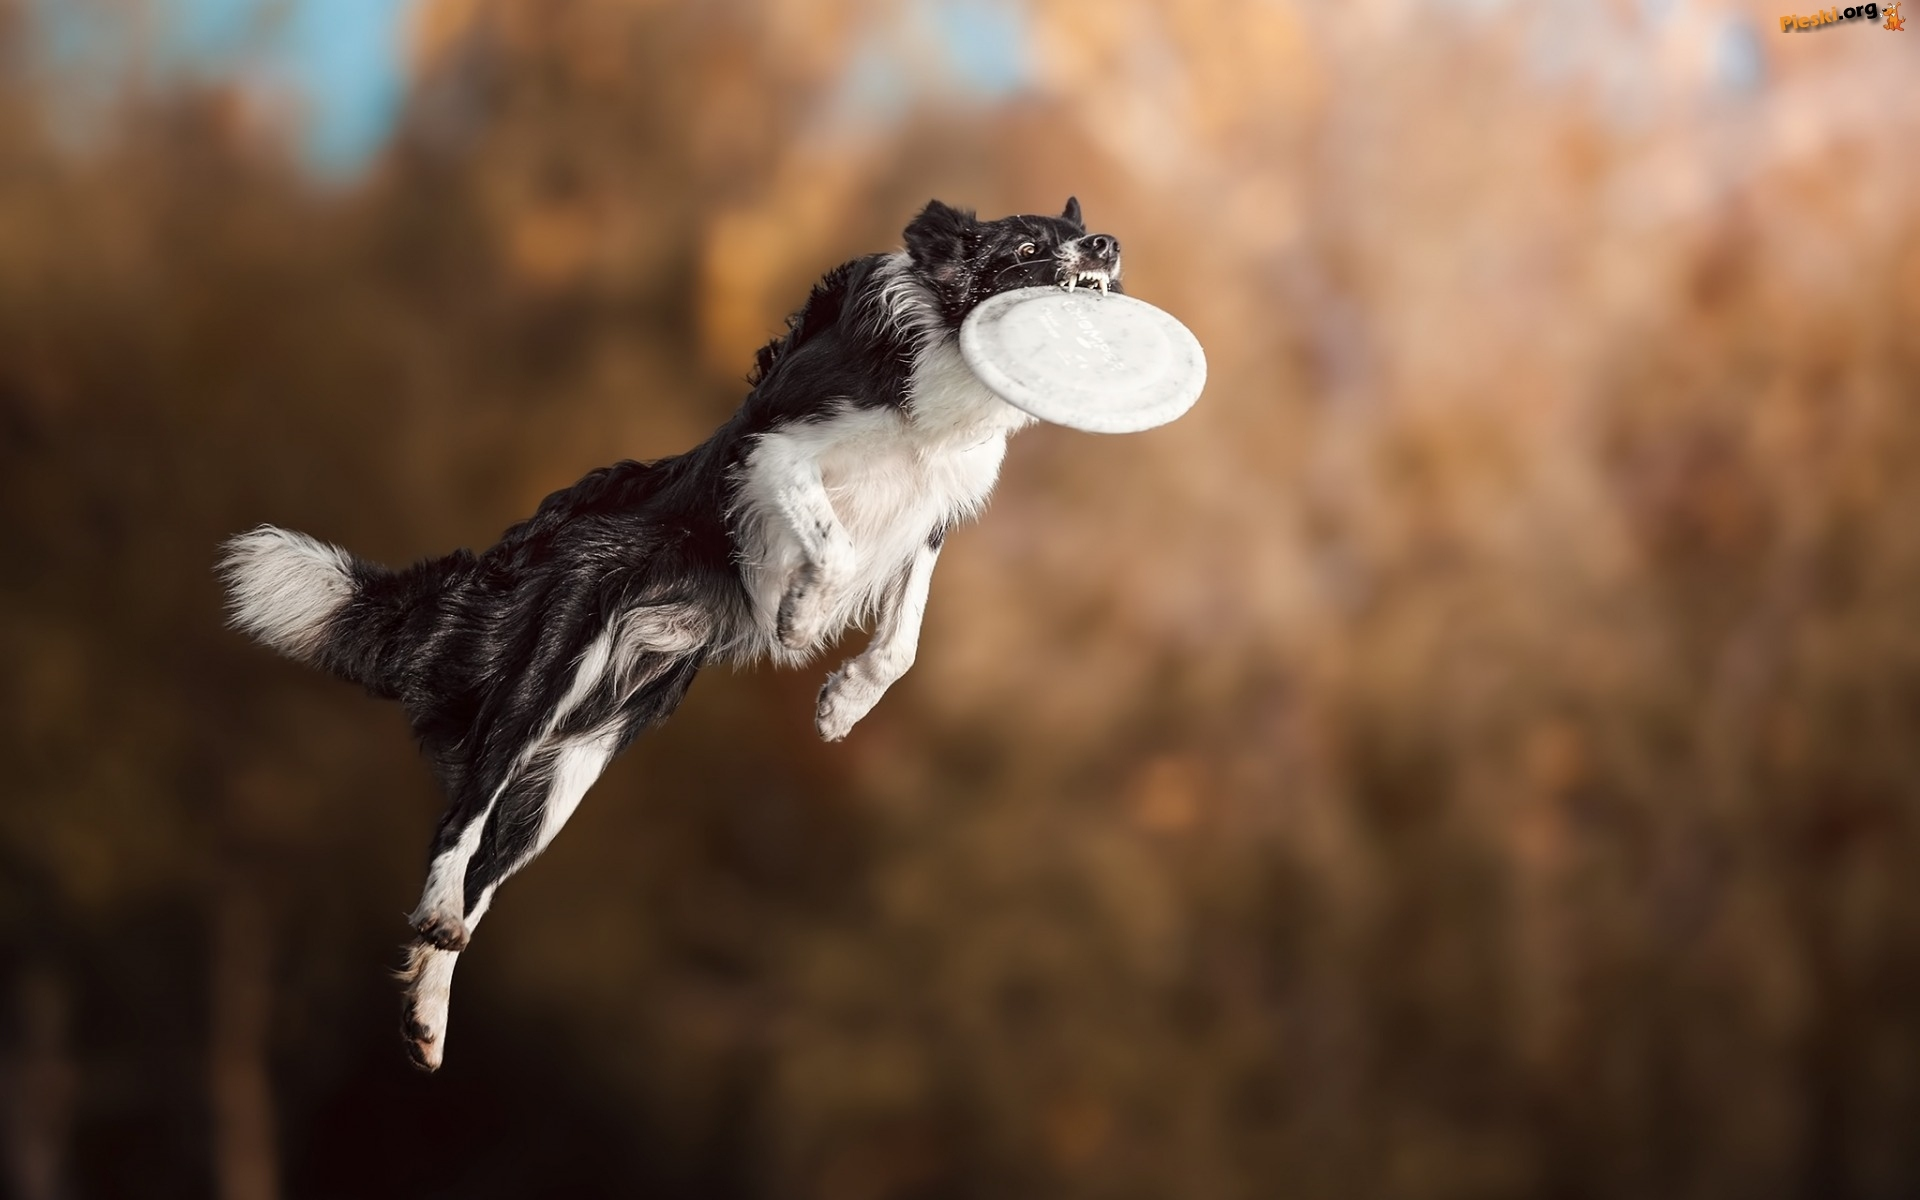 Border collie, Frisbee